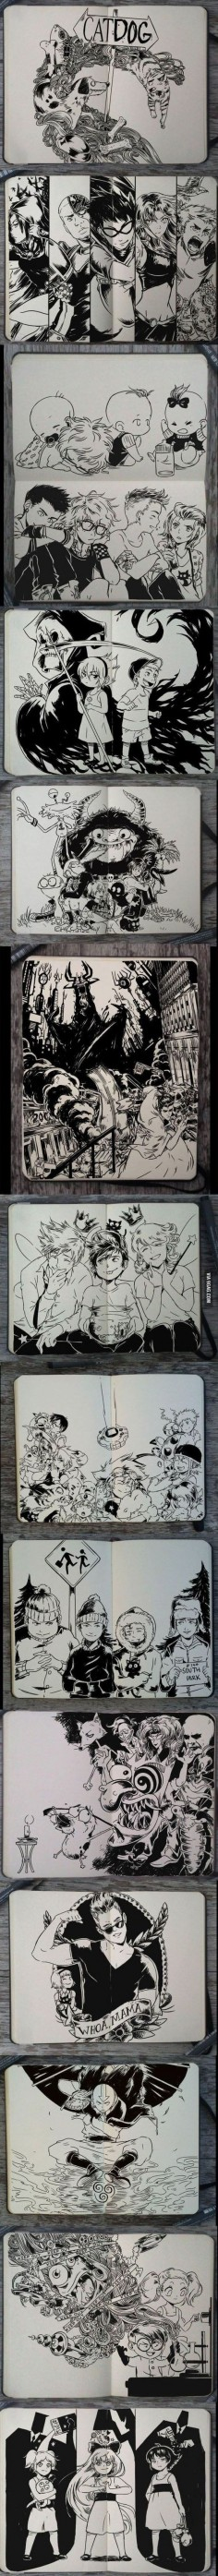 My childhood cartoons in real manga style. Except for South Park, that's NOT for kids